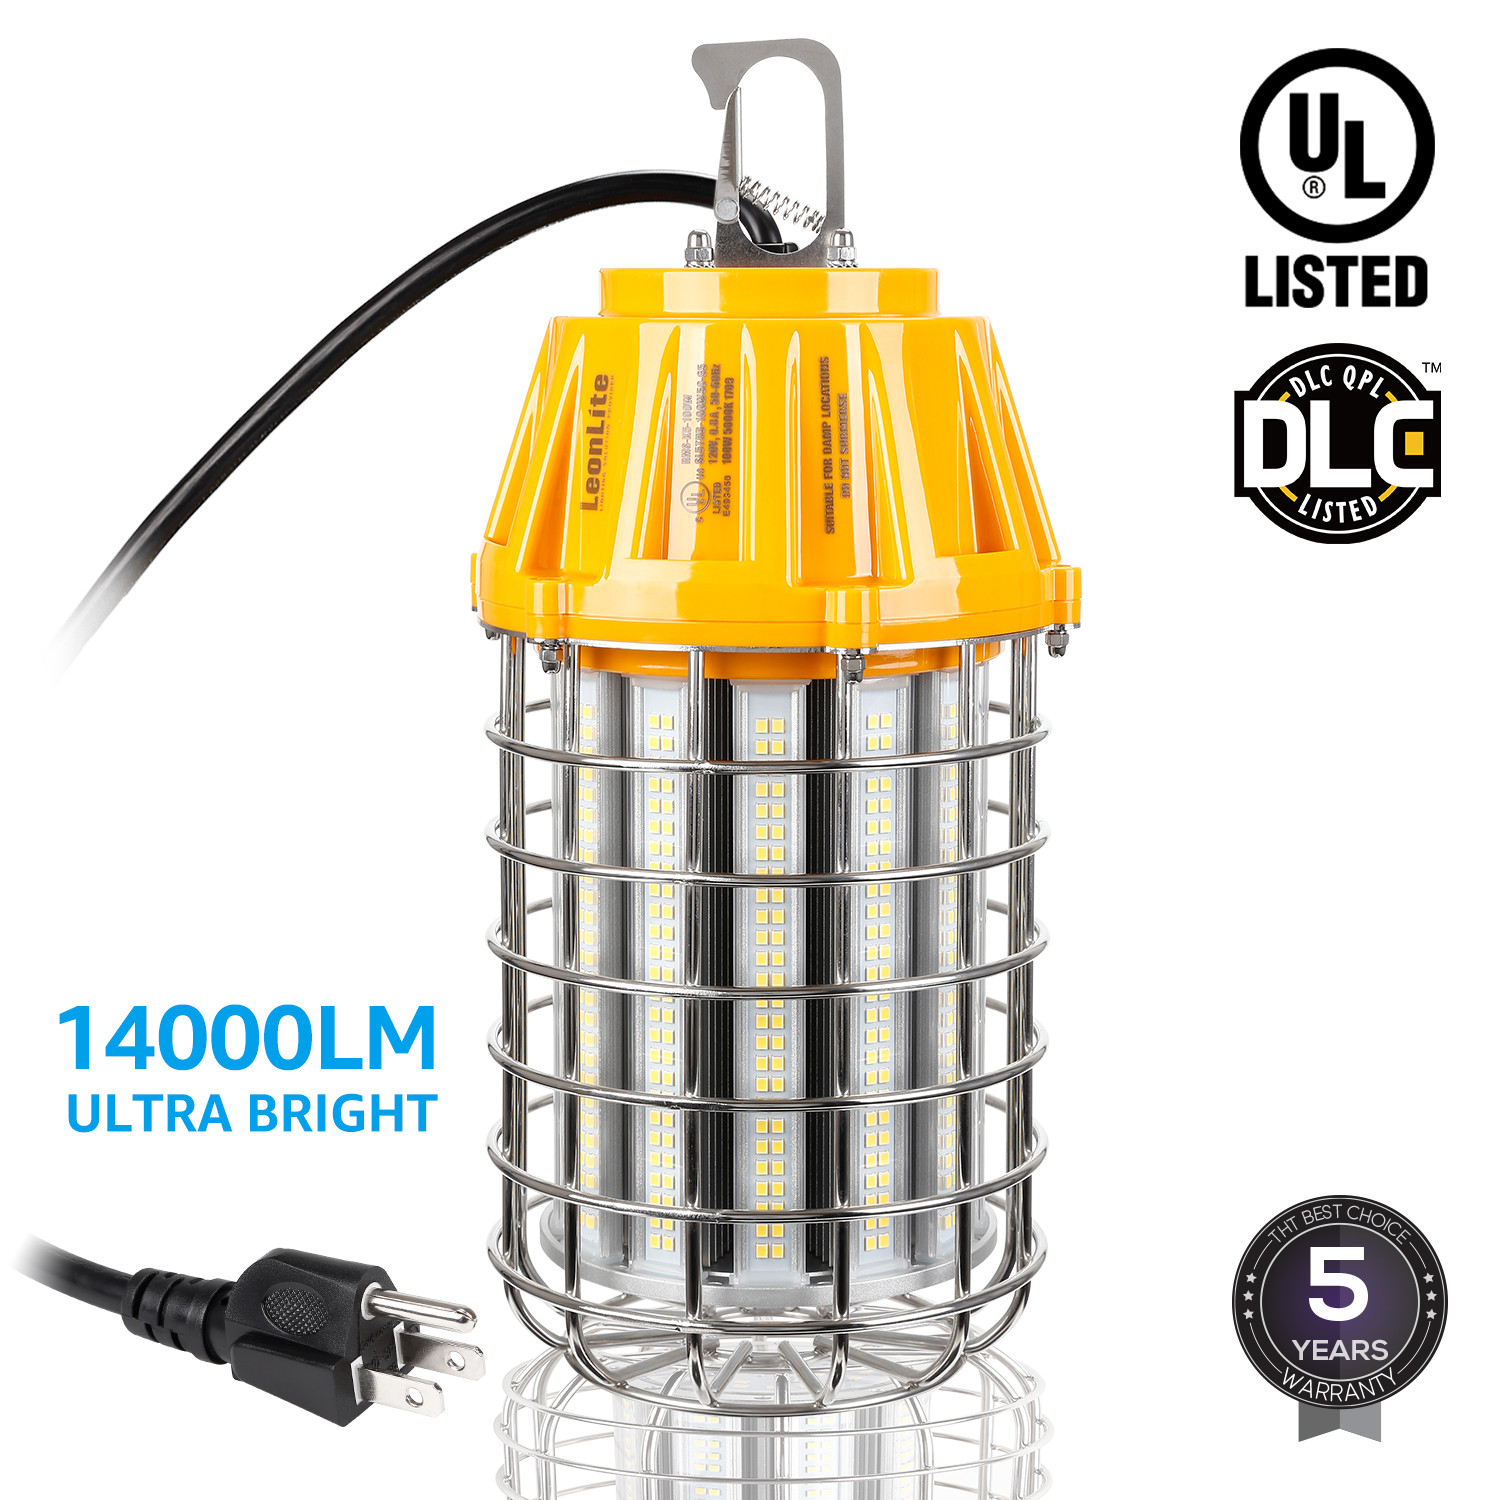 100W LED Temporary High Bay Light, Factory Houseware Industry Lighting Feature